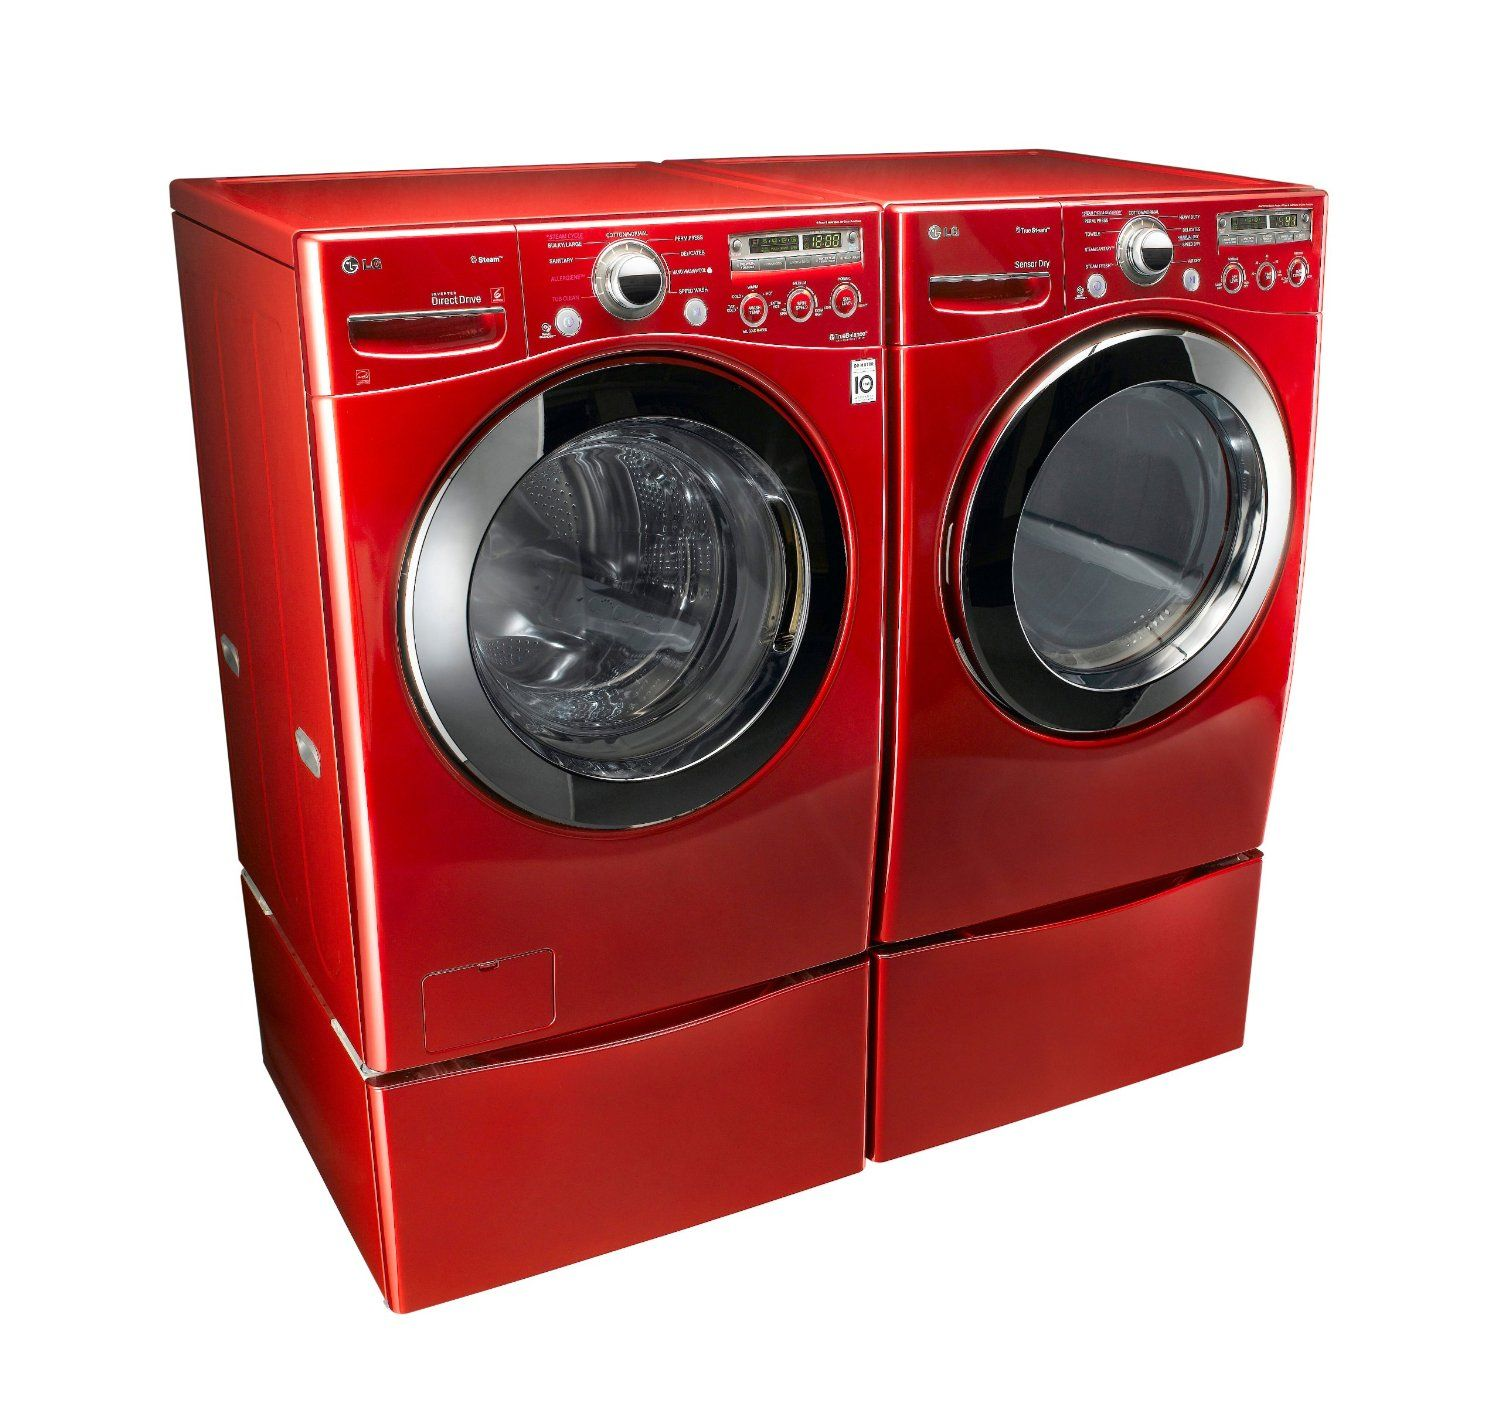 Lg Wild Cherry Red Steam Laundry Pair With Matching Pedestals And Electric Dryer Wm2650hra Dlex2650r Wd Lg Washer And Dryer Laundry Pedestal Steam Laundry